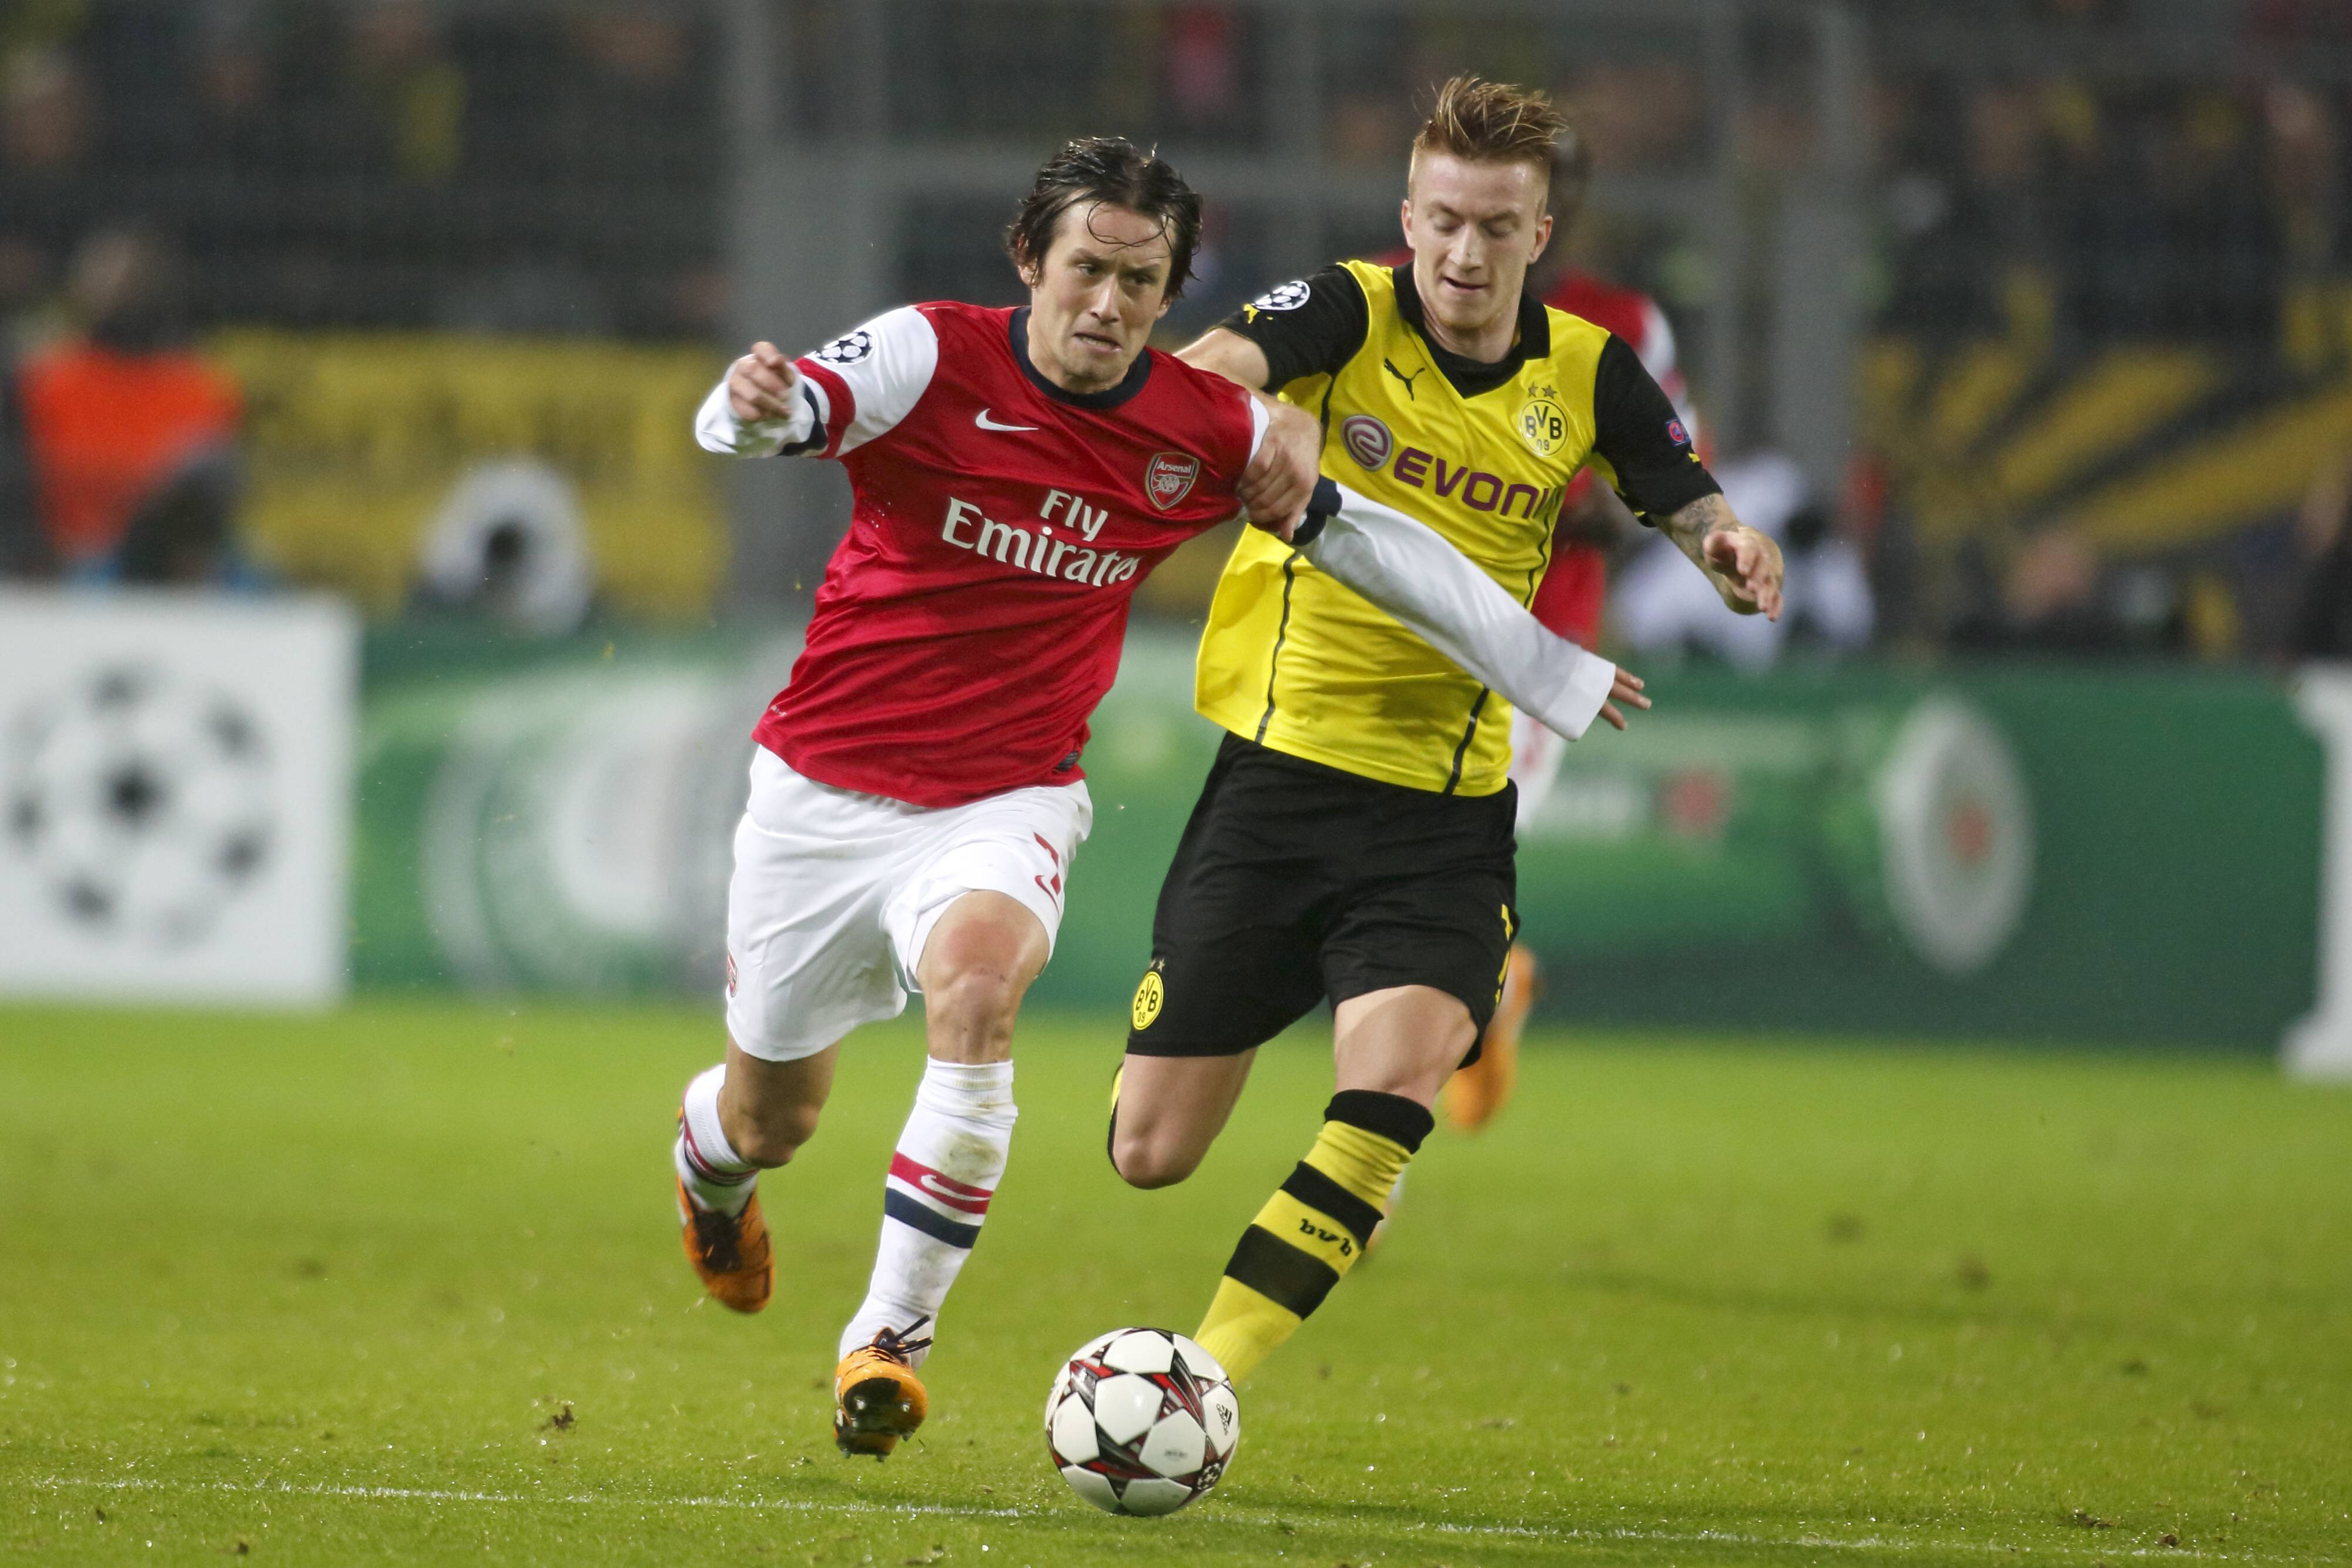 *GER ONLY / NO GALLERY* Tomas Rosicky Marco Reus